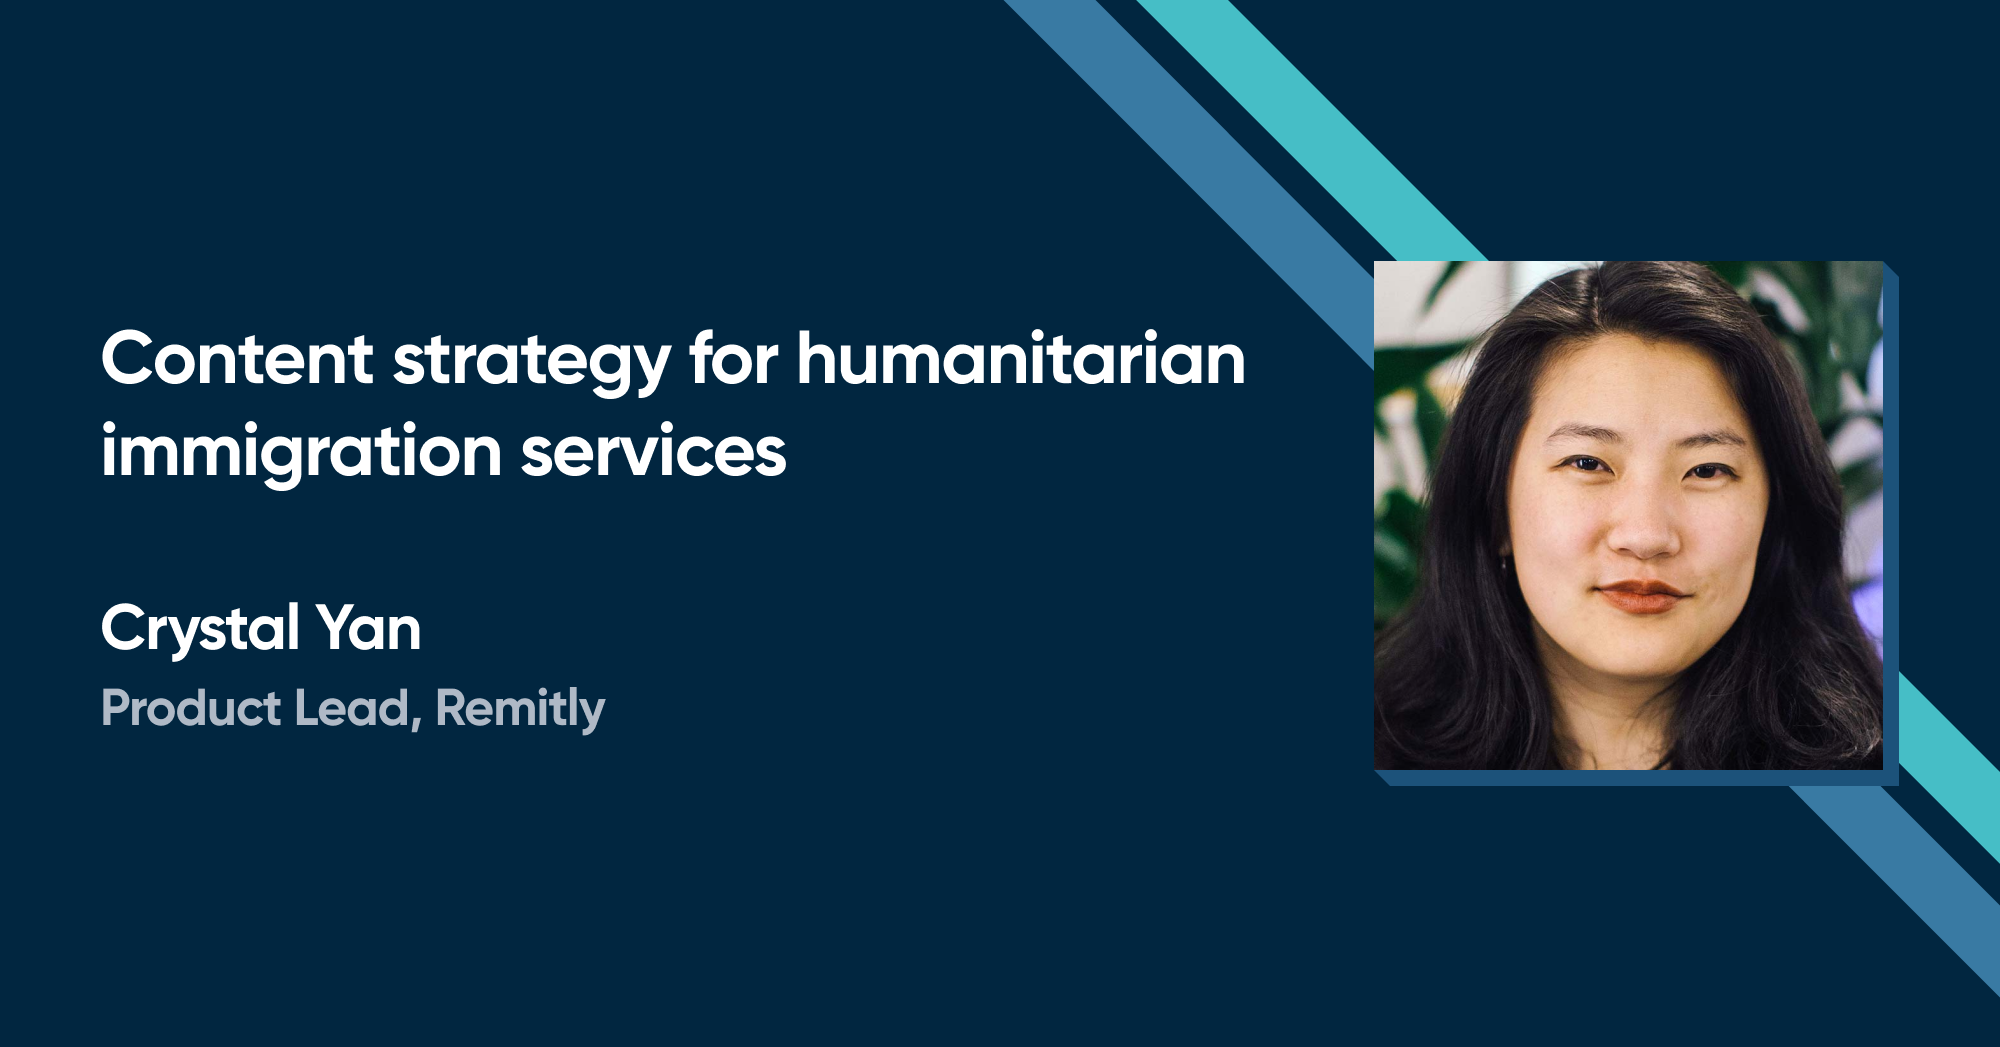 Crystal Yan - Content strategy for humanitarian immigration services